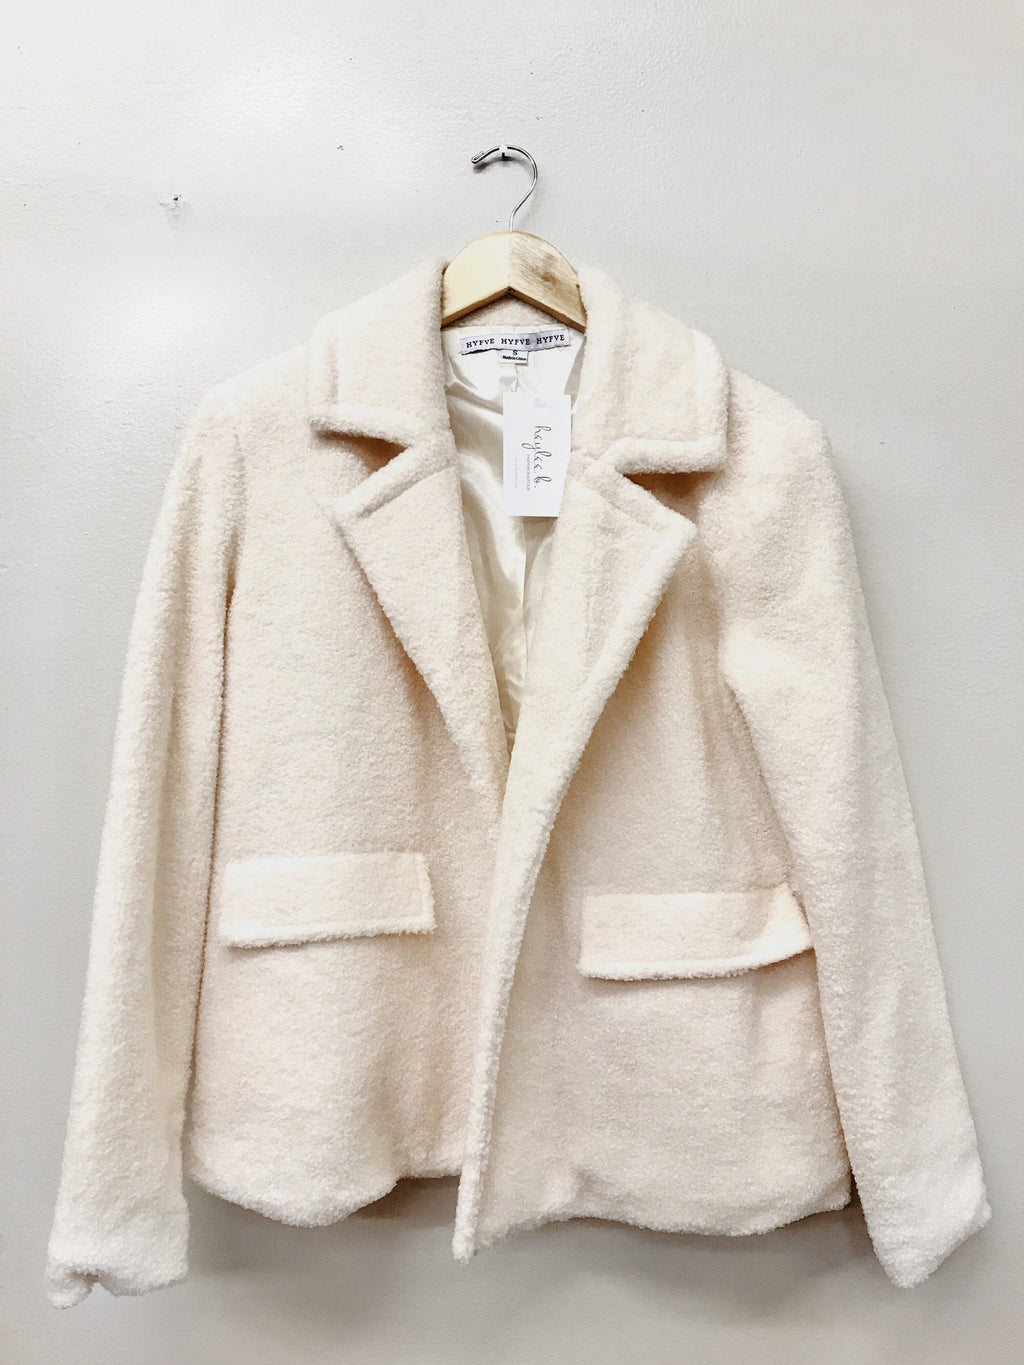 Build My Life Coat - Cream